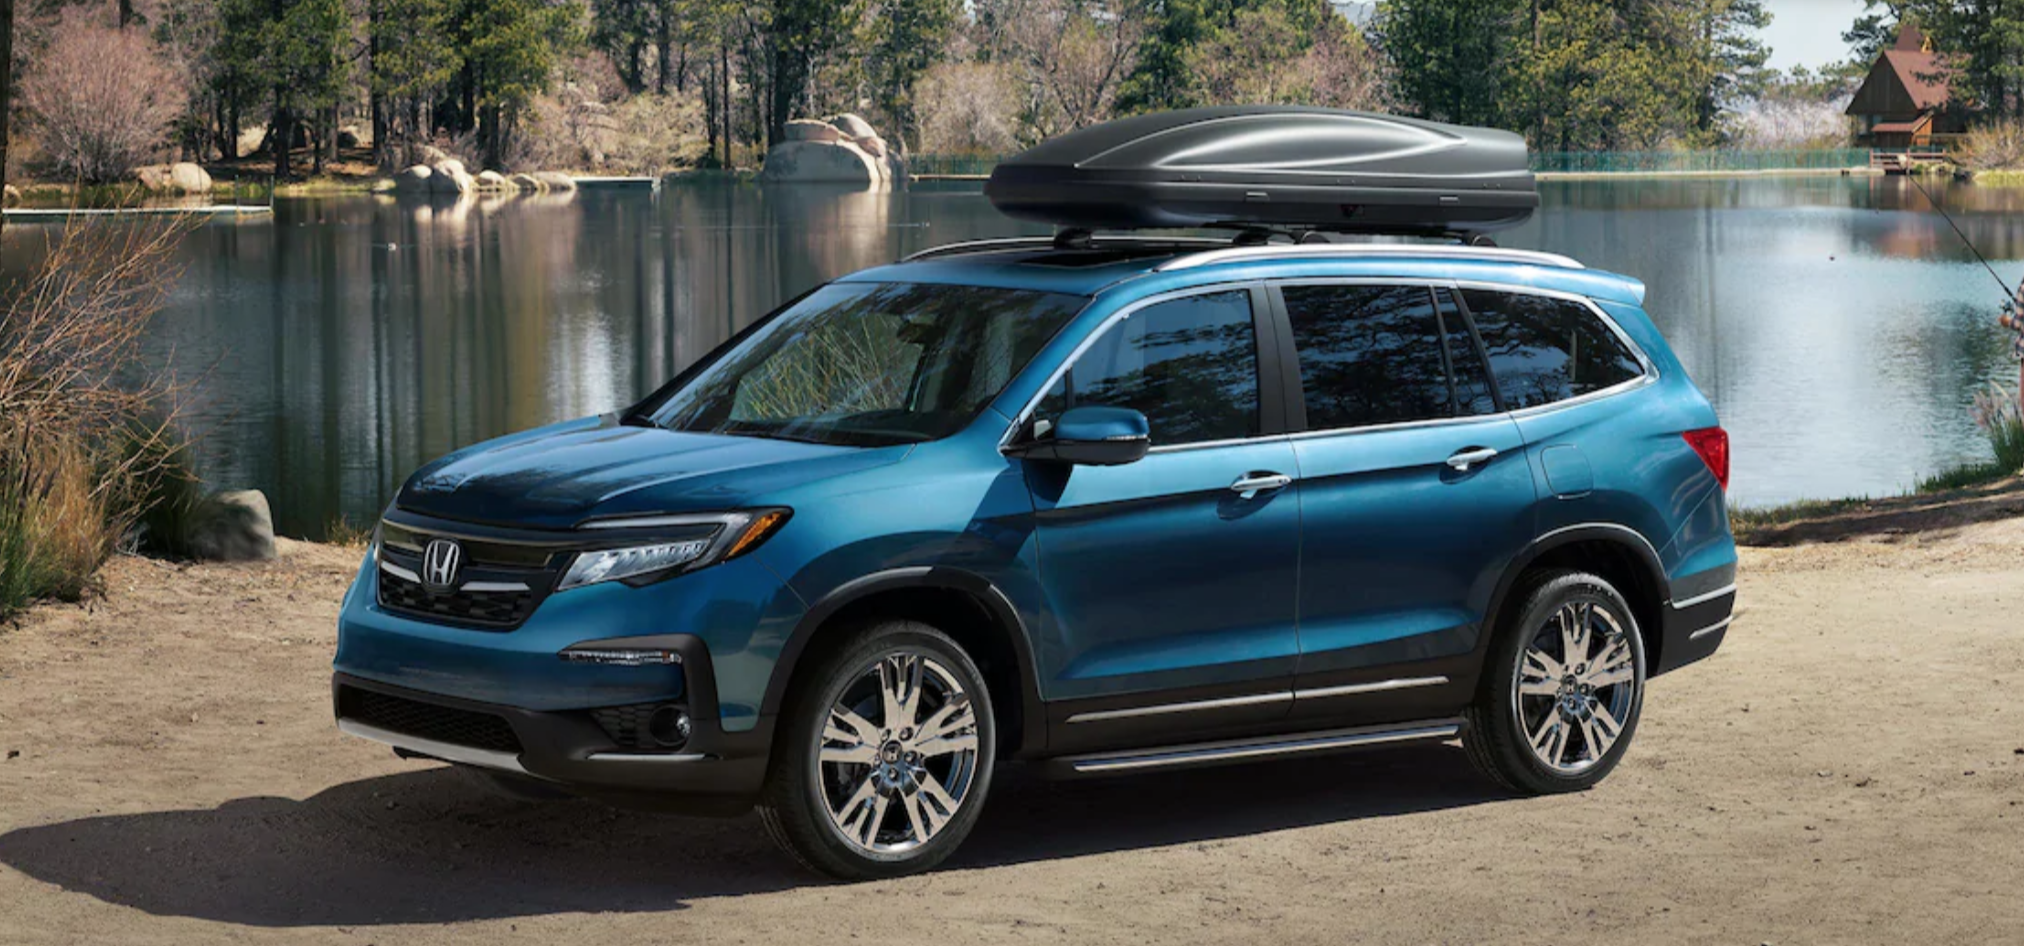 The 2019 Honda Pilot is All About Quality